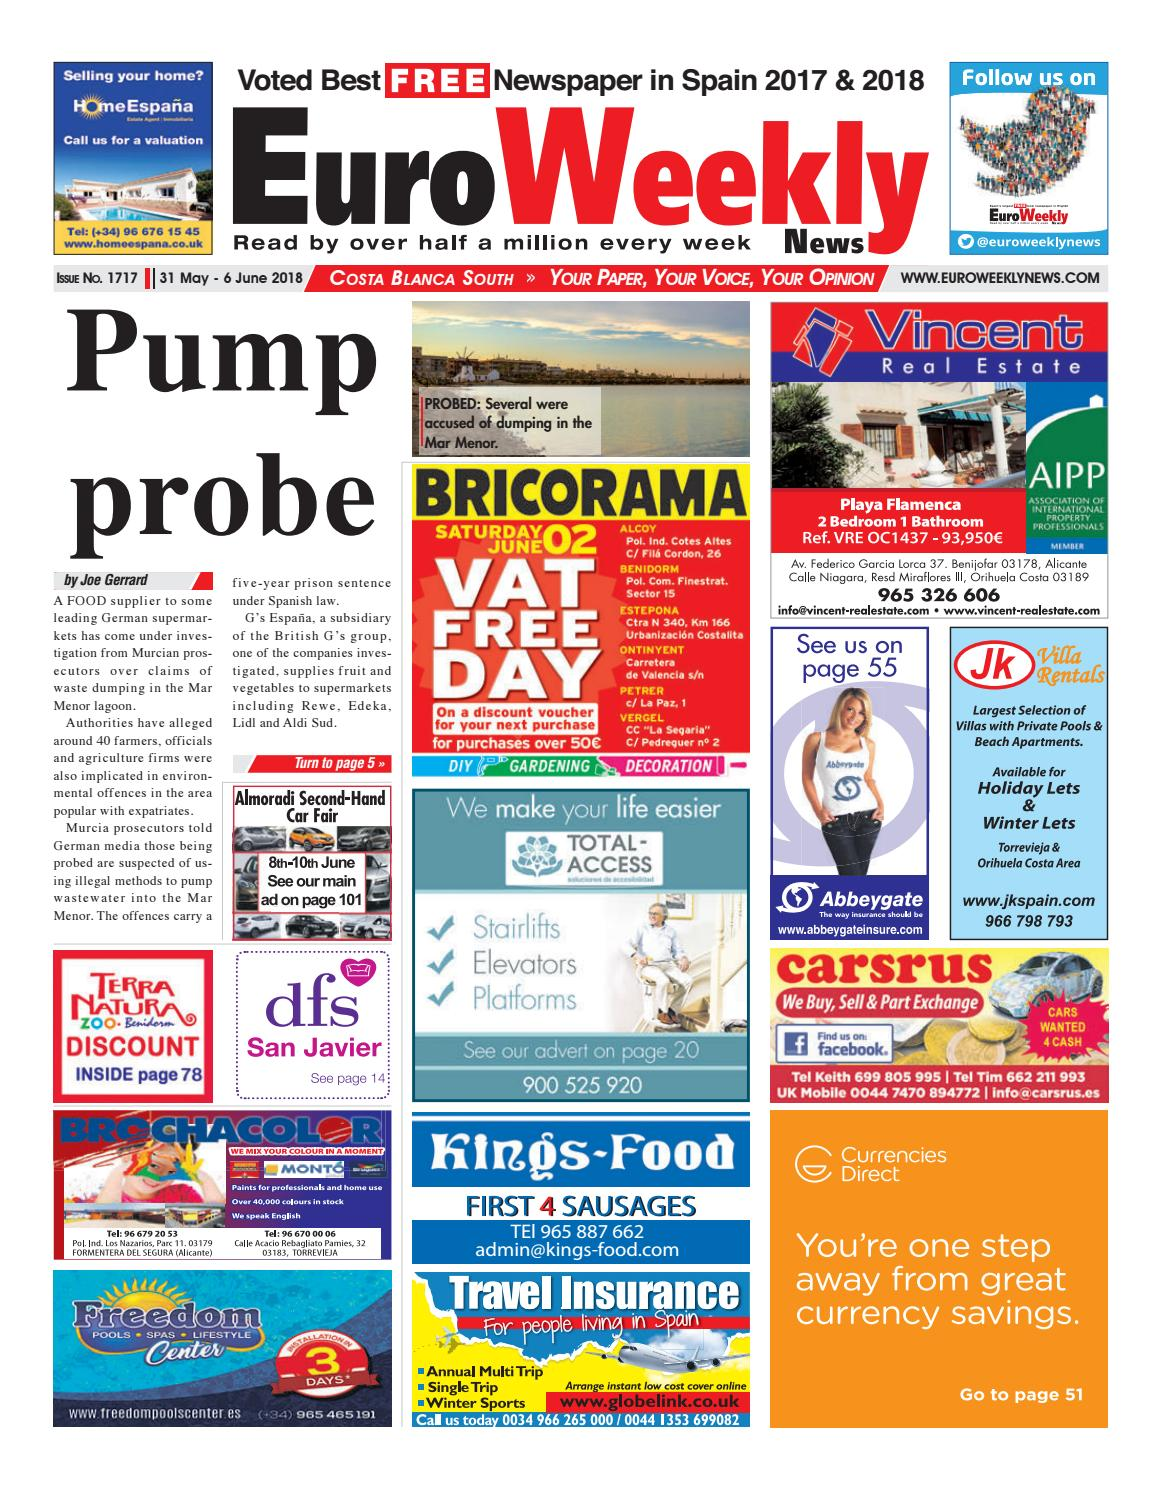 86481c16b8 Euro Weekly News - Costa Blanca South 31 May - 6 June 2018 Issue 1717 by  Euro Weekly News Media S.A. - issuu